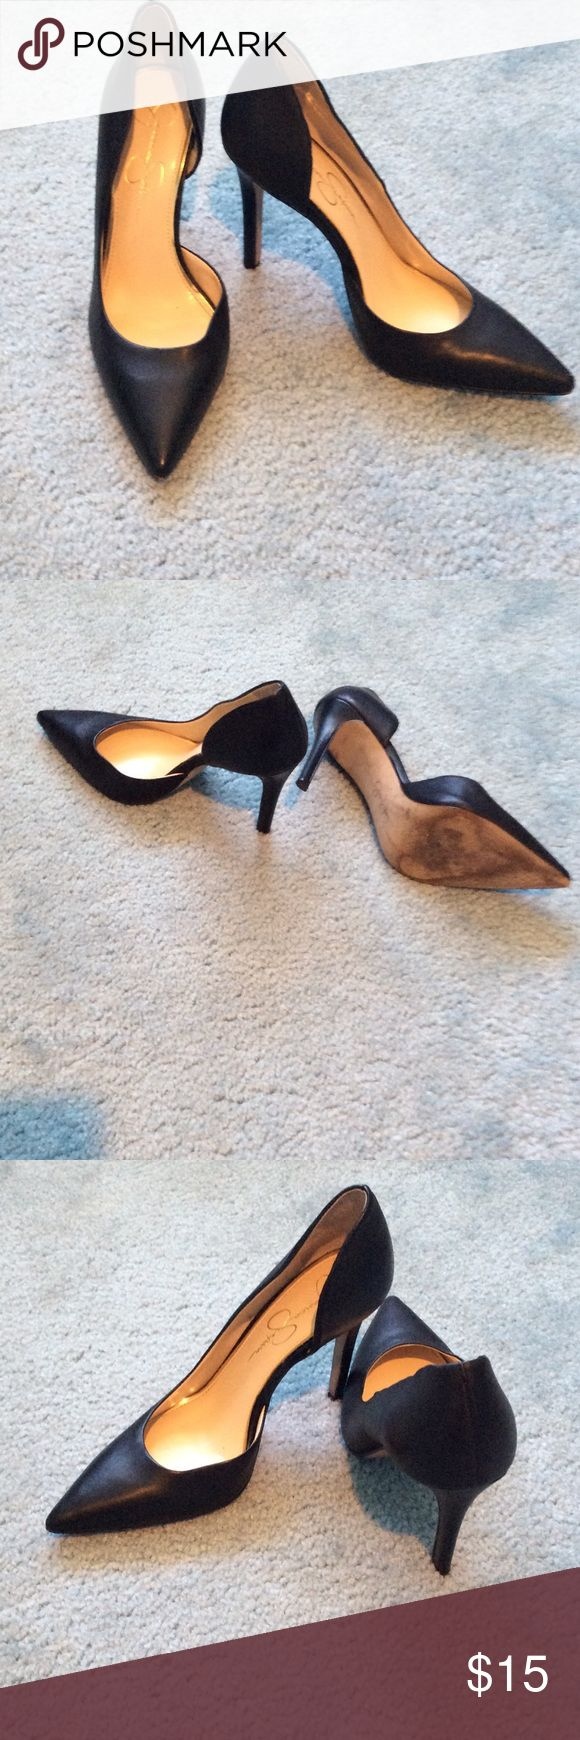 Jessica Simpson black pumps ❤Jessica Simpson❤ black pointed toe heels. 🌼LIGHTLY WORN, LIKE NEW🌼 Jessica Simpson Shoes Heels